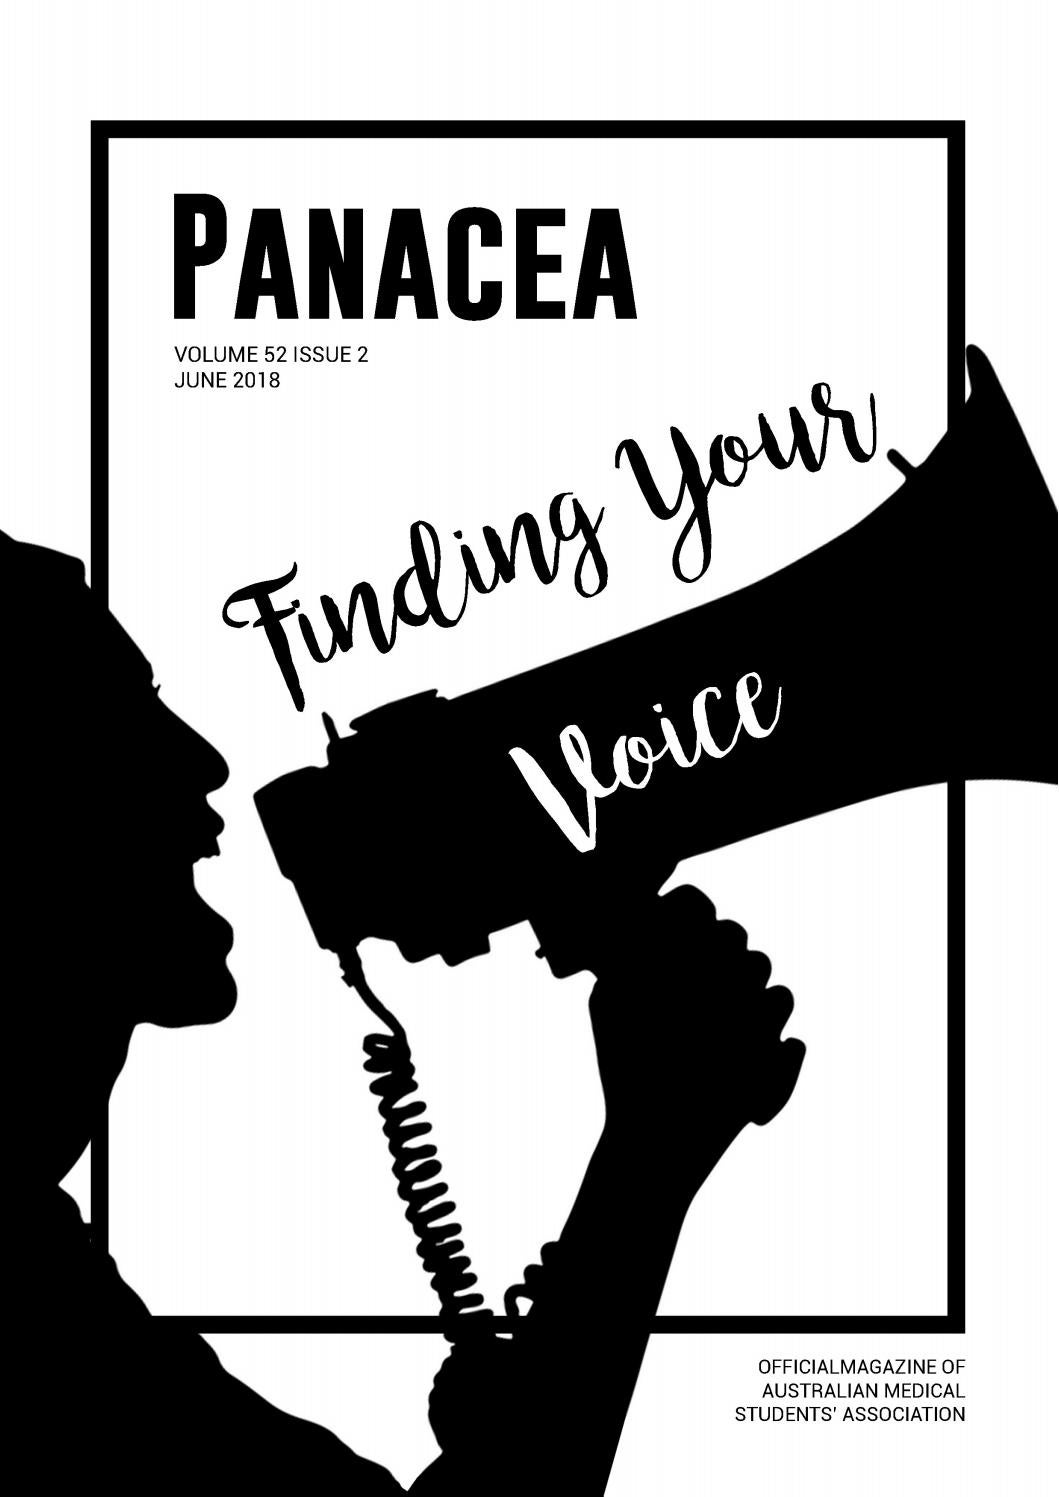 Executive Function Not Panacea For >> Panacea Volume 52 Issue 2 By The Australian Medical Students